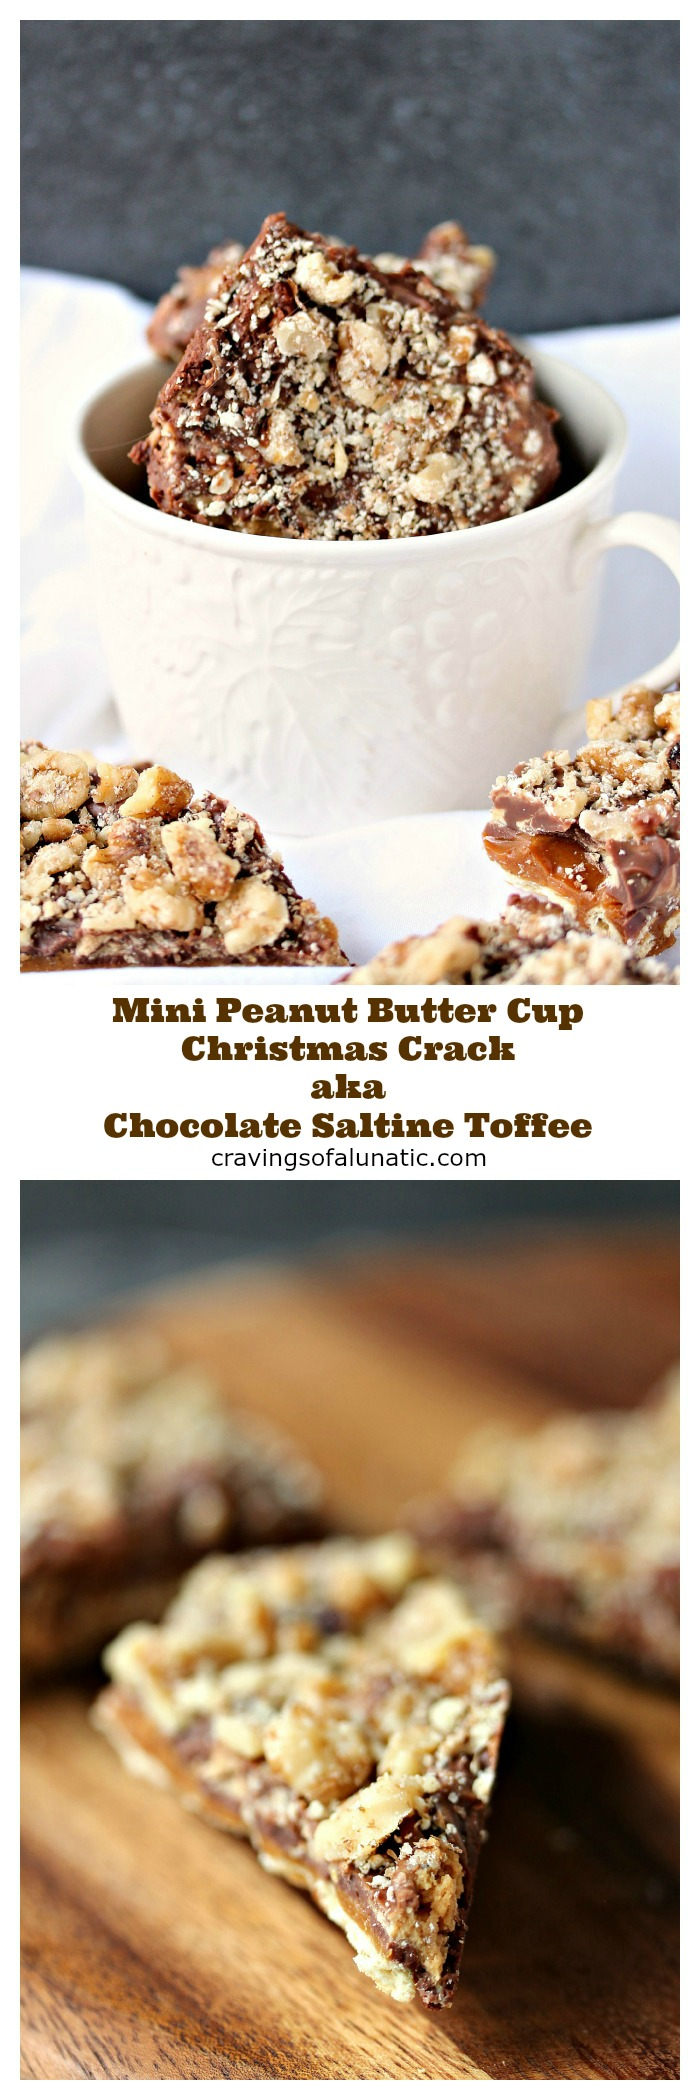 Mini Peanut Butter Cup Christmas Crack aka Chocolate Saltine Toffee from cravingsofalunatic.com- A holiday tradition known as Chocolate Saltine Toffee to some people, and more recently known as Christmas Crack. I don't care what you call it as long as you share some with me! (@CravingsLunatic)